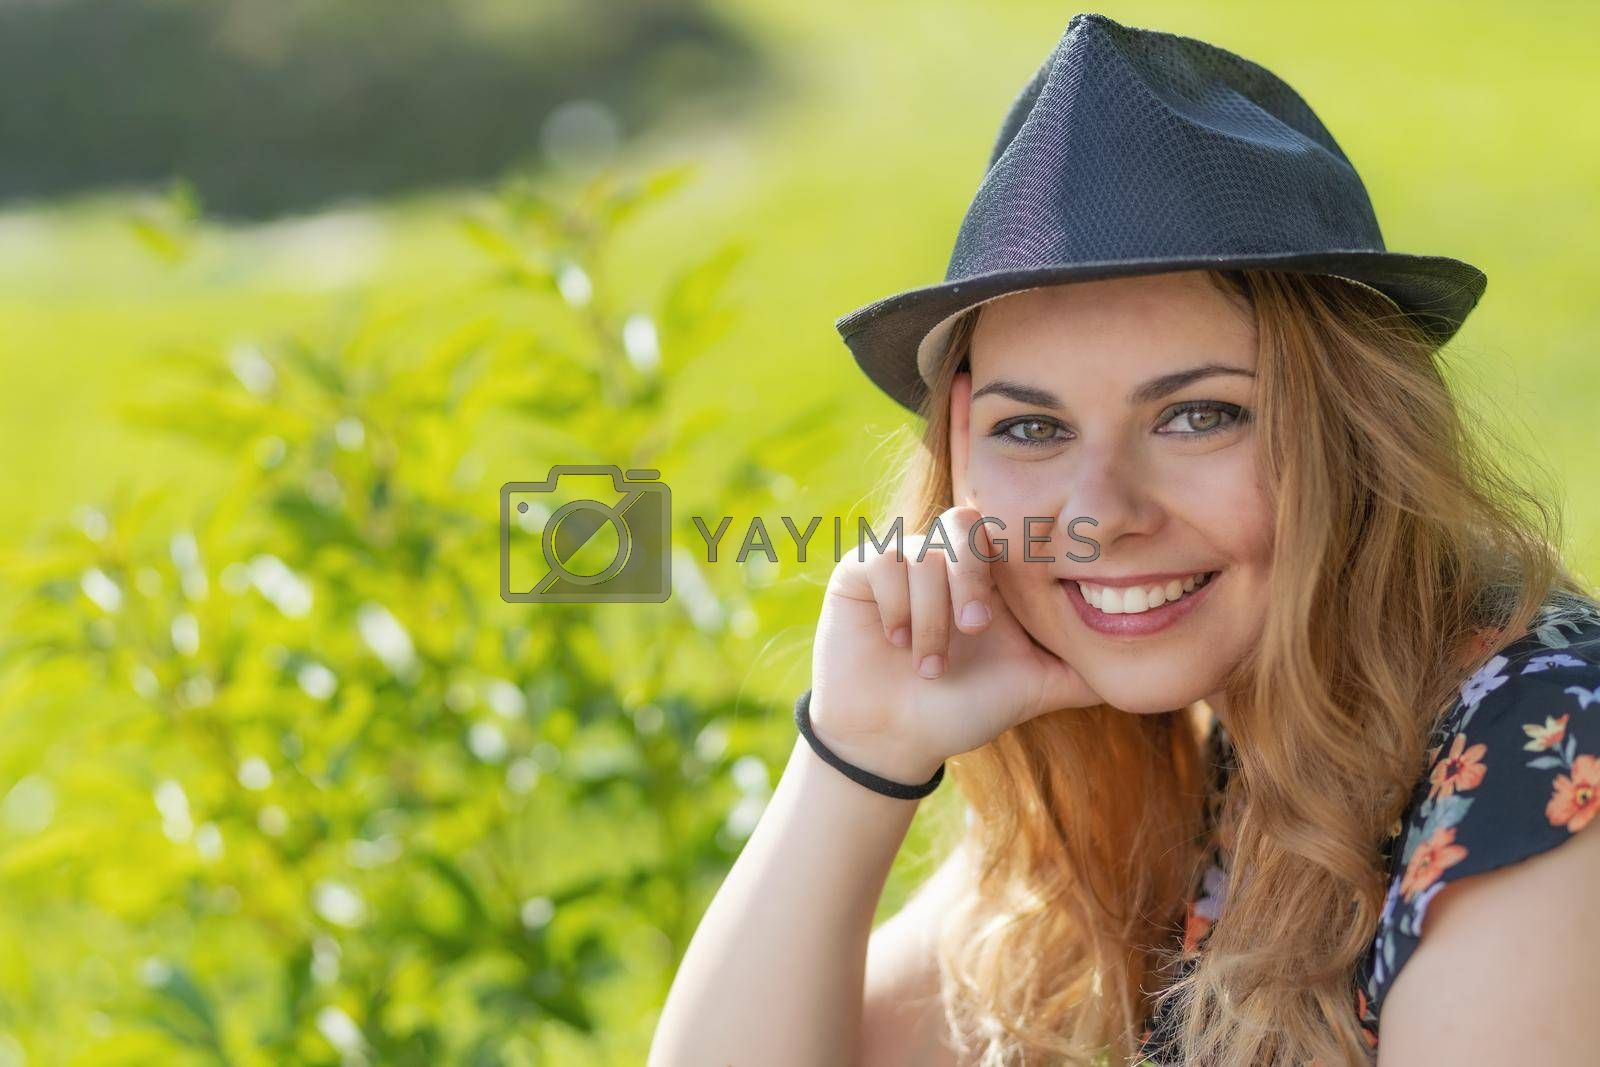 Royalty free image of Portrait of beautiful smiling young woman in sunny day. by Frank11